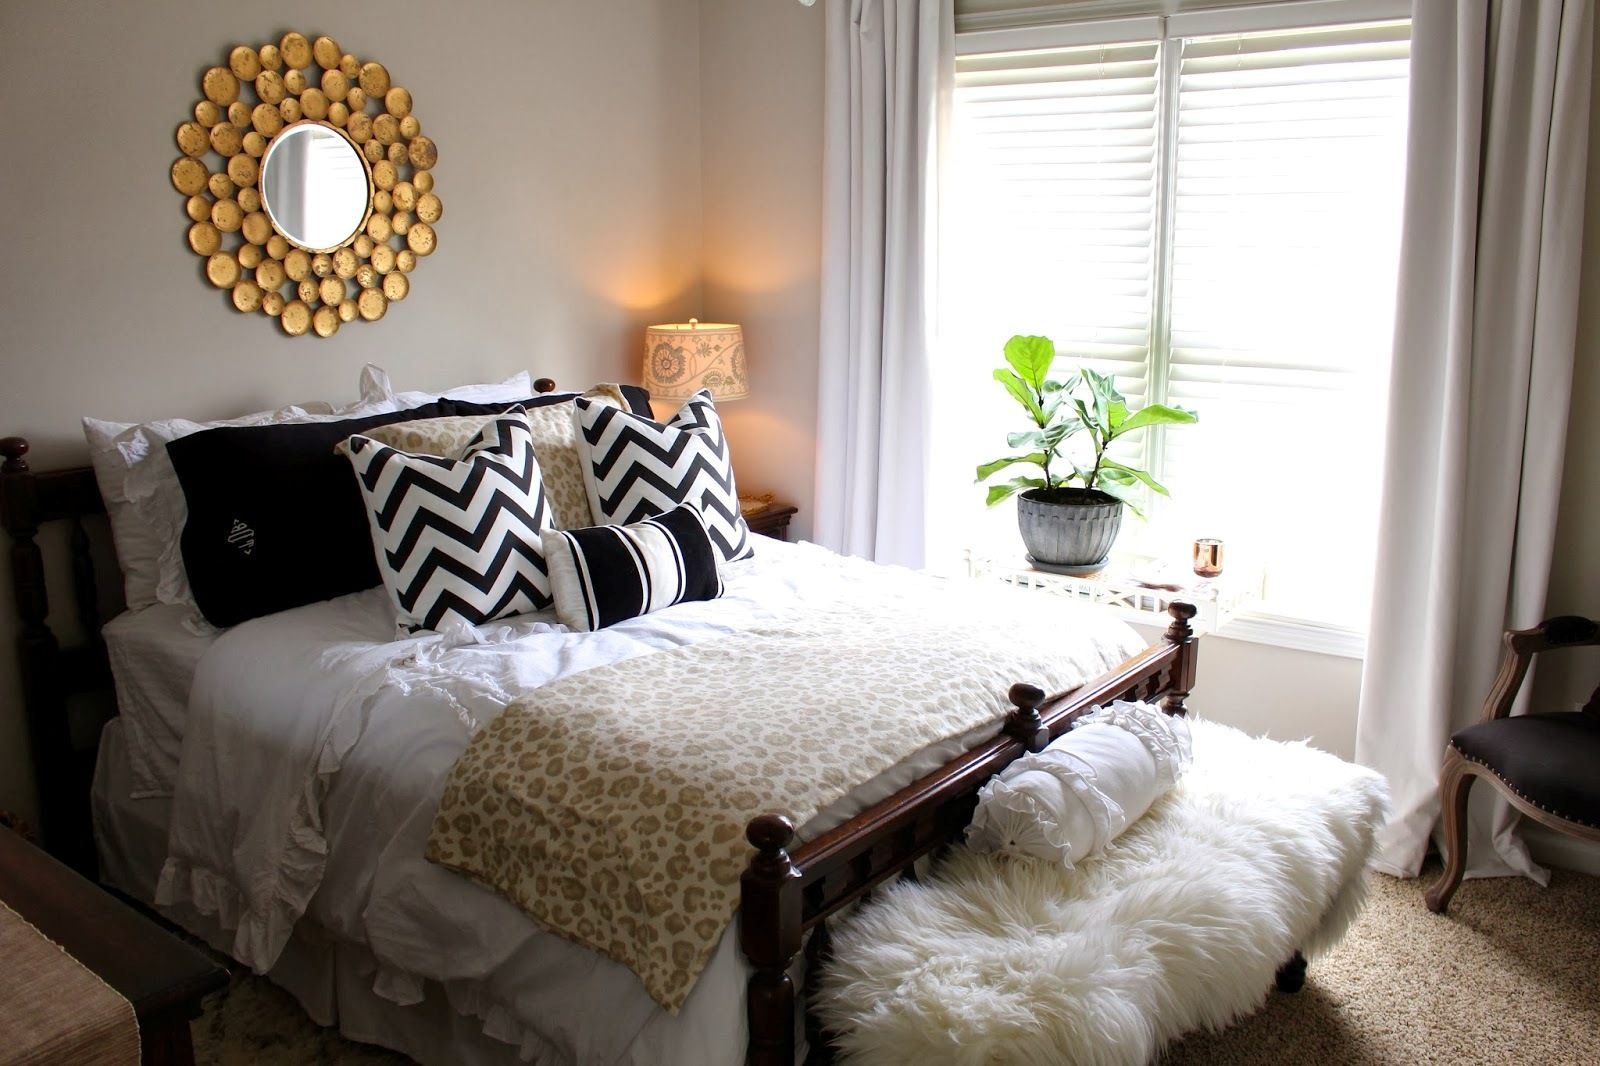 spare room ideas - Google Search | Guest room bed, Tiny ...